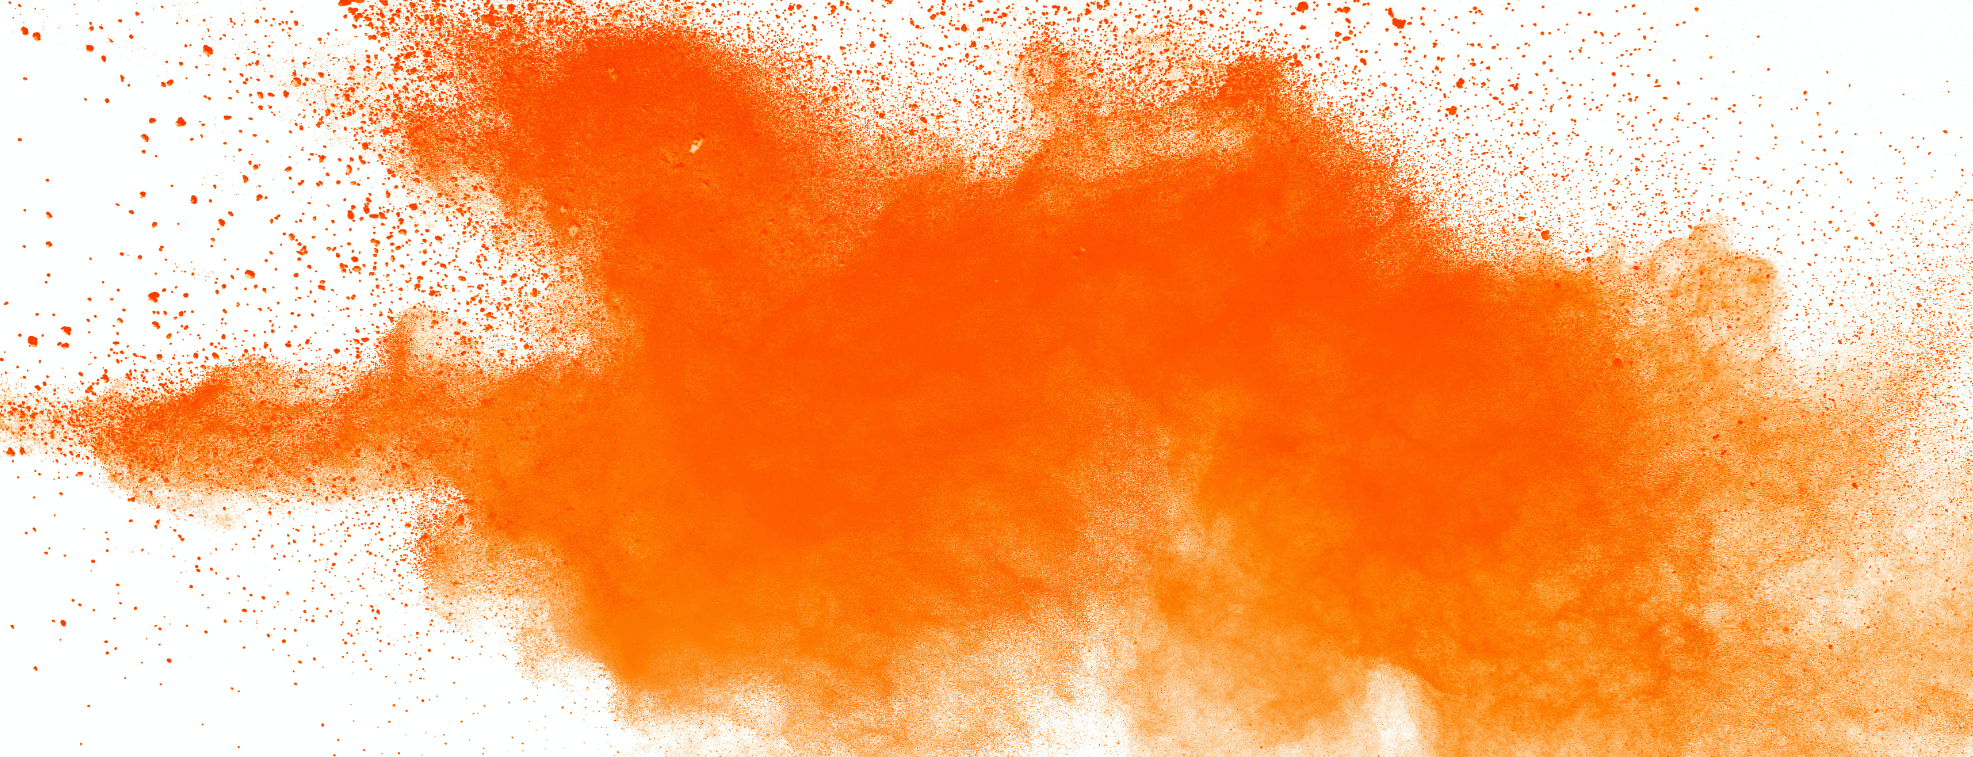 Orange paint on a white board